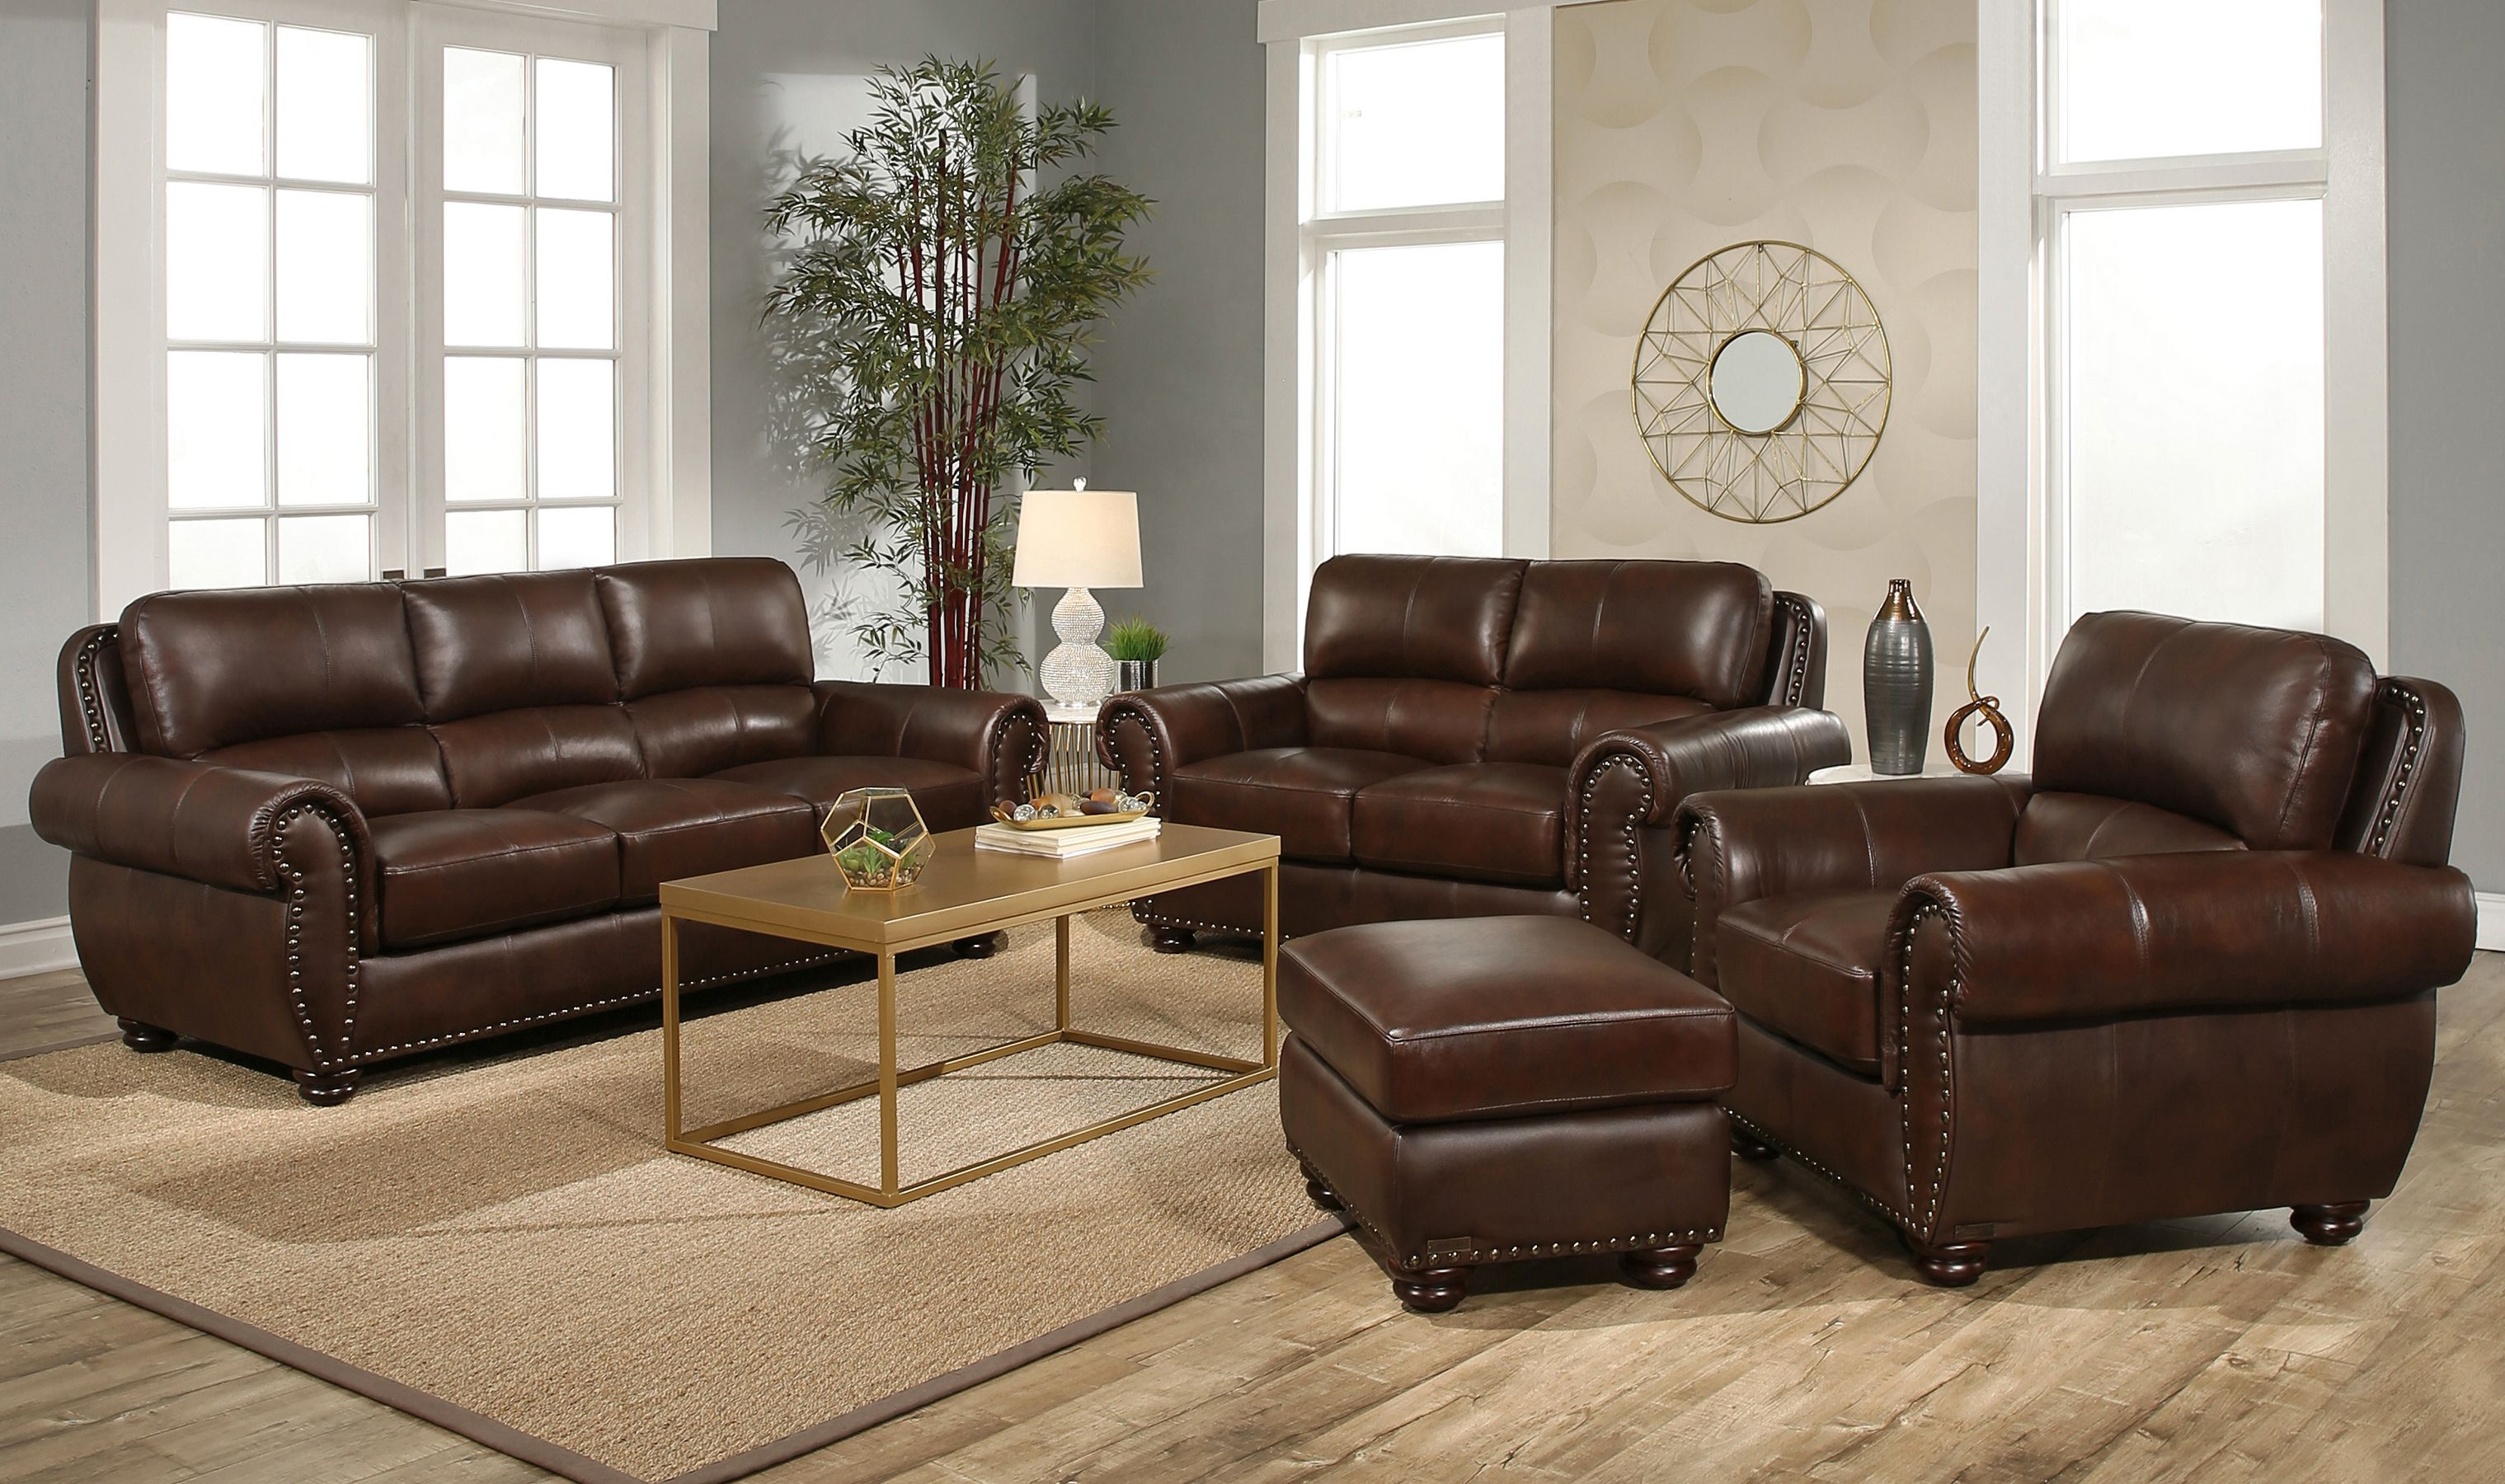 Austin 4 Piece Top Grain Leather Living Room Set in 10 Smart Tricks of How to Improve Costco Living Room Sets